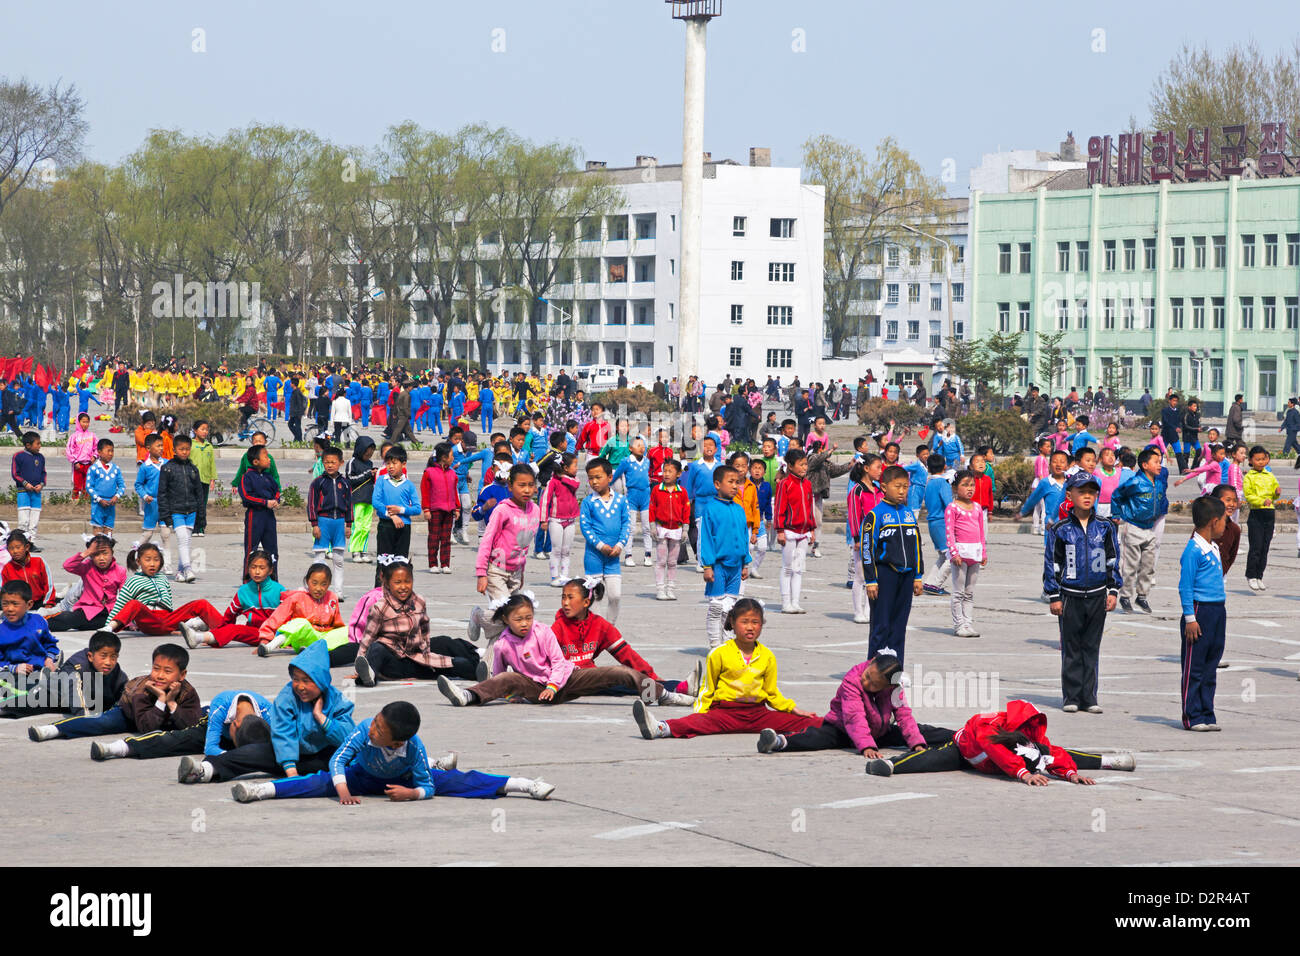 Children practising mass games outside the Grand Theatre, Hamhung, North Korea - Stock Image